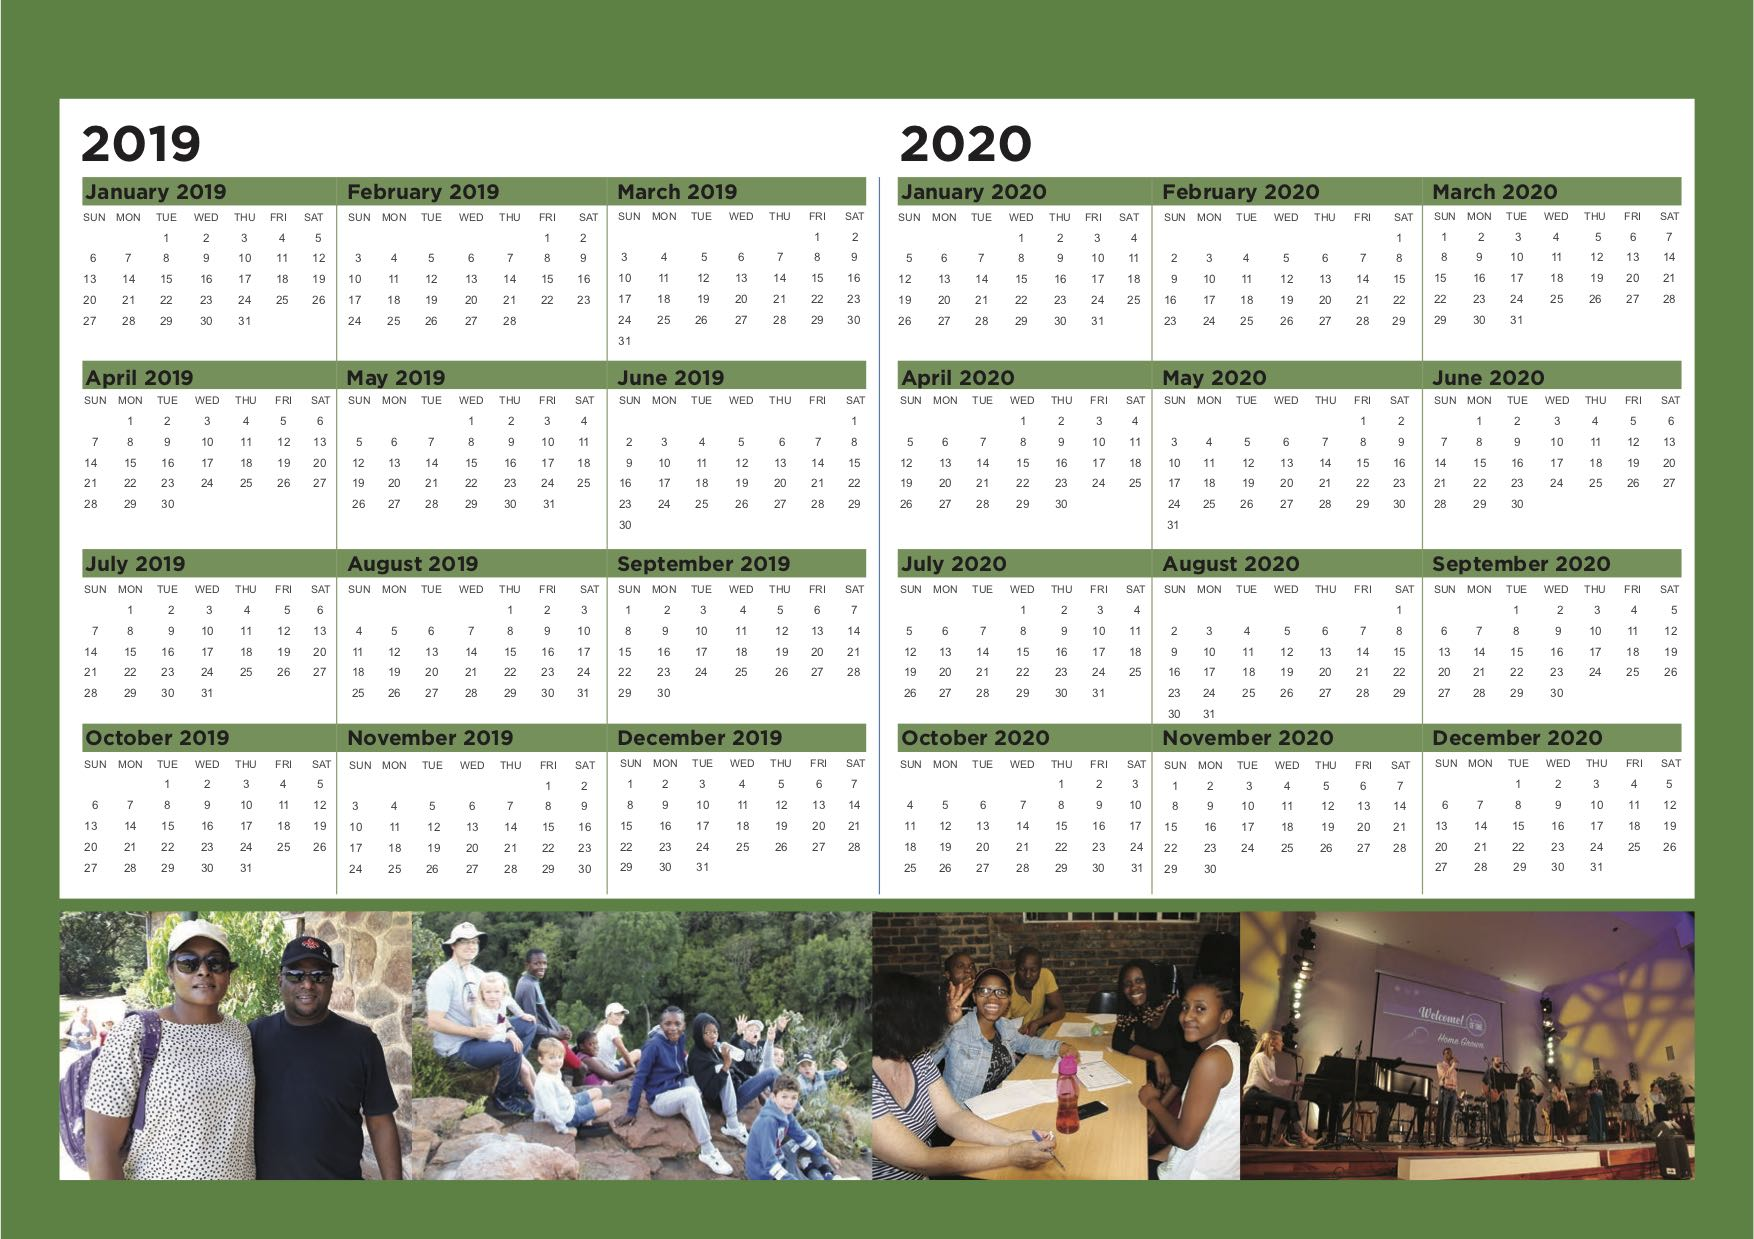 15. CCM calendar 2019 - 2019 and 2020 Overview